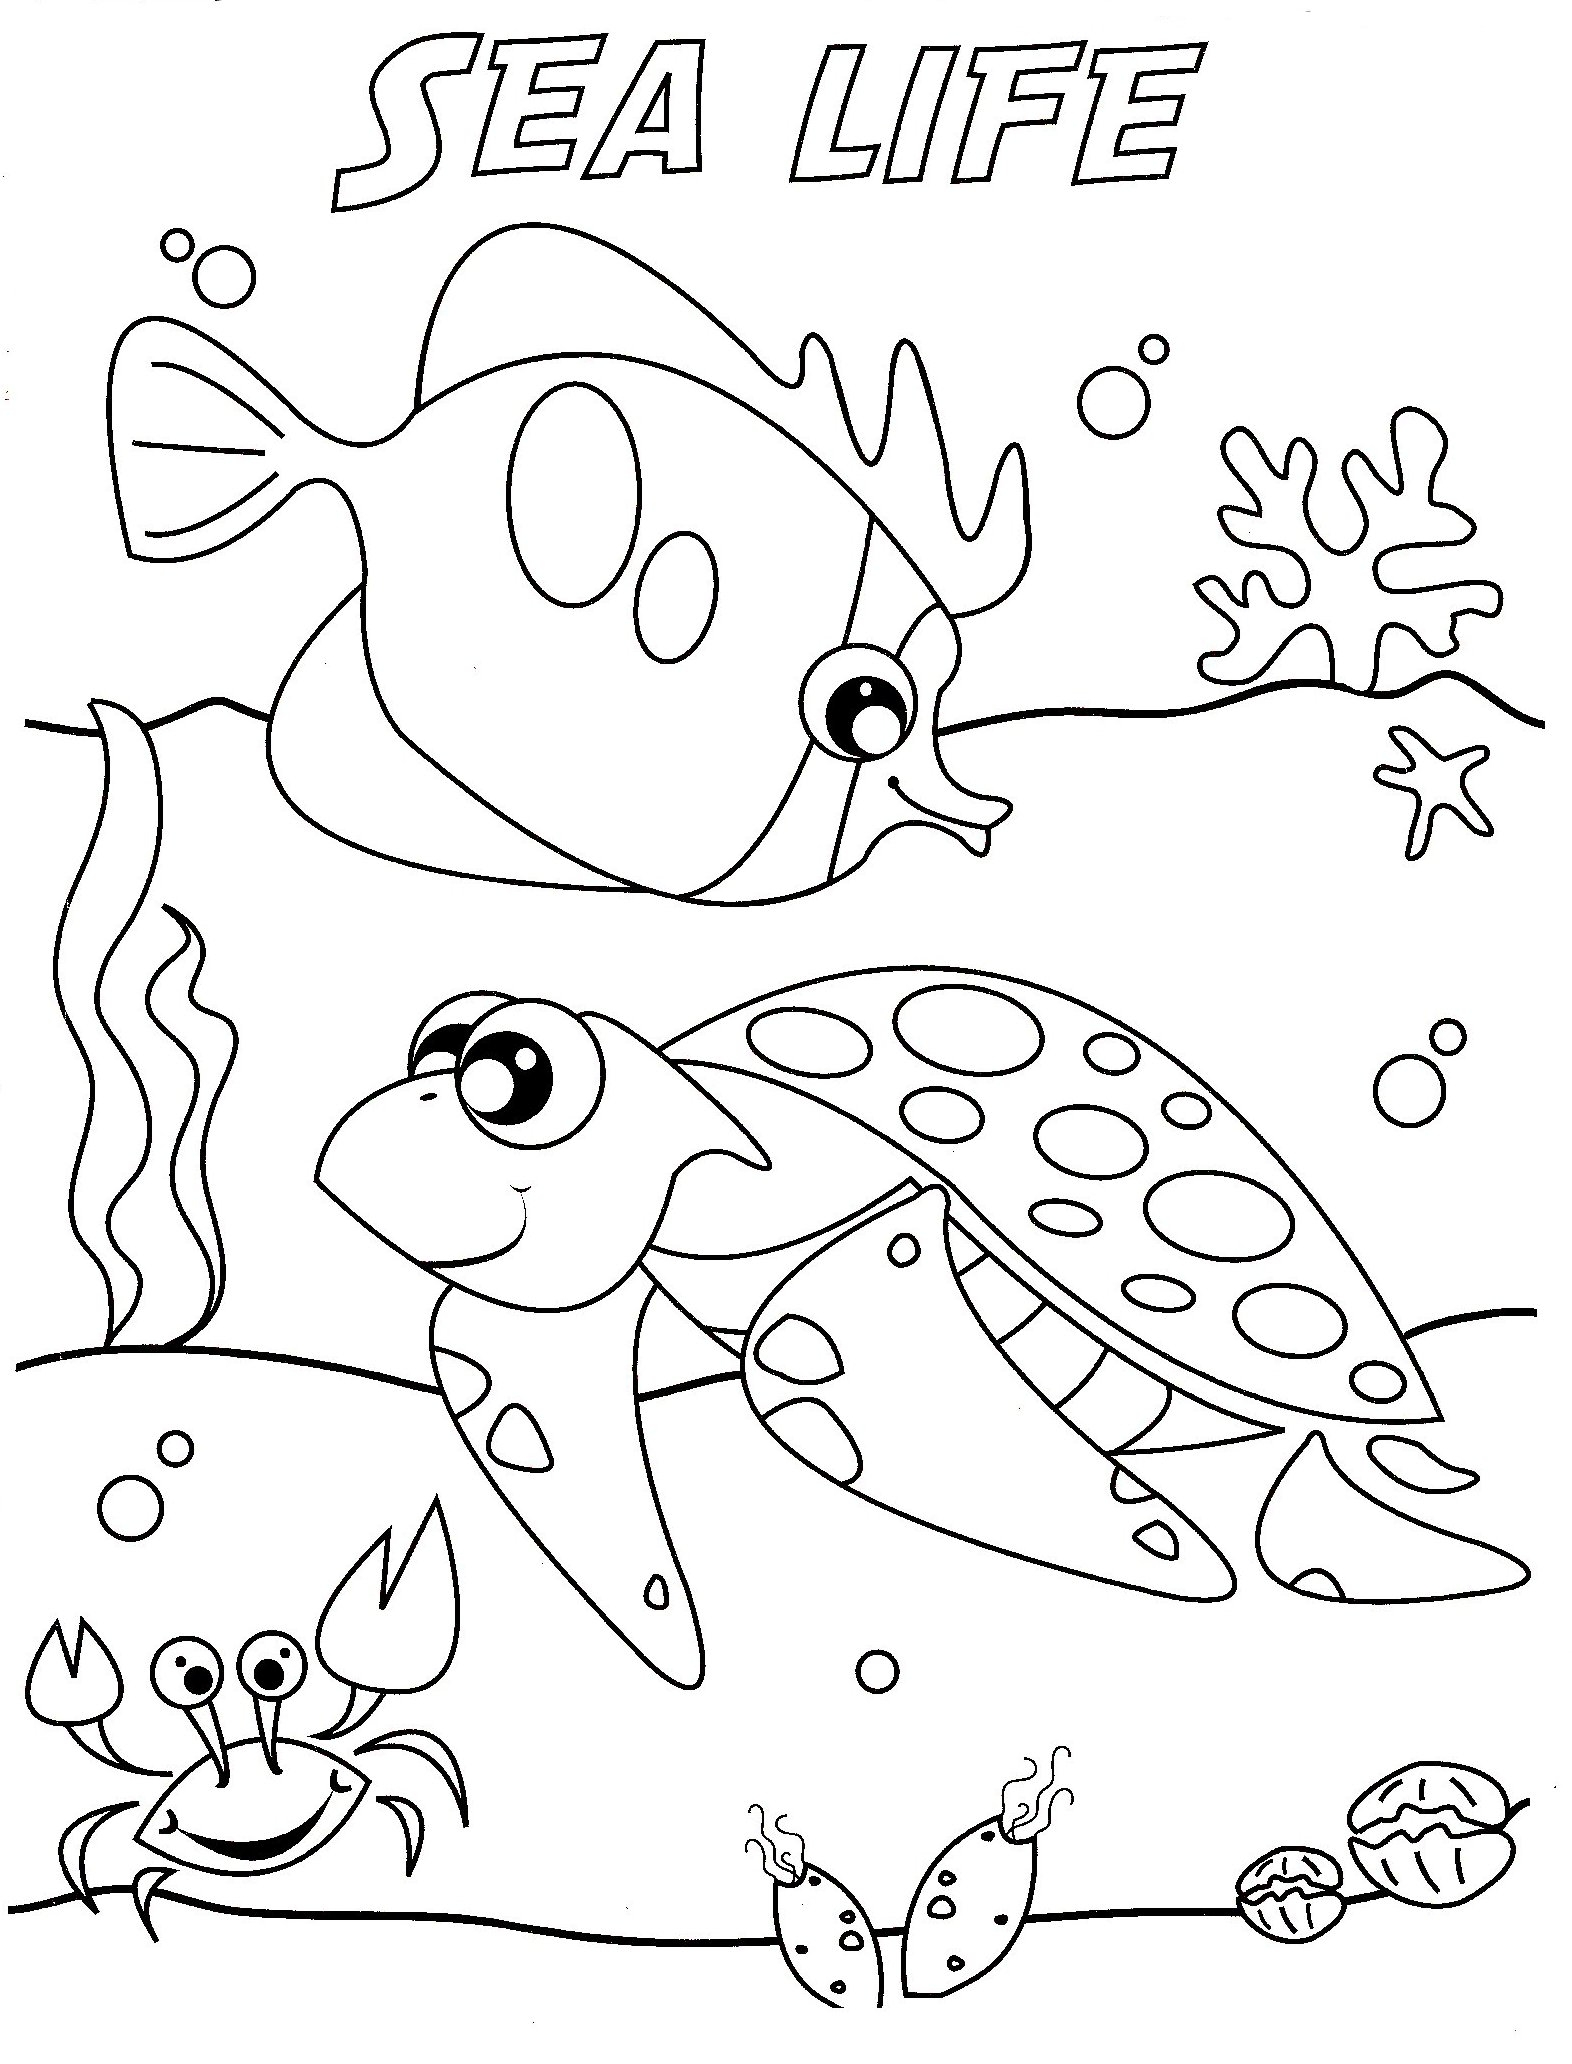 free butterfly coloring pages - sea creature coloring